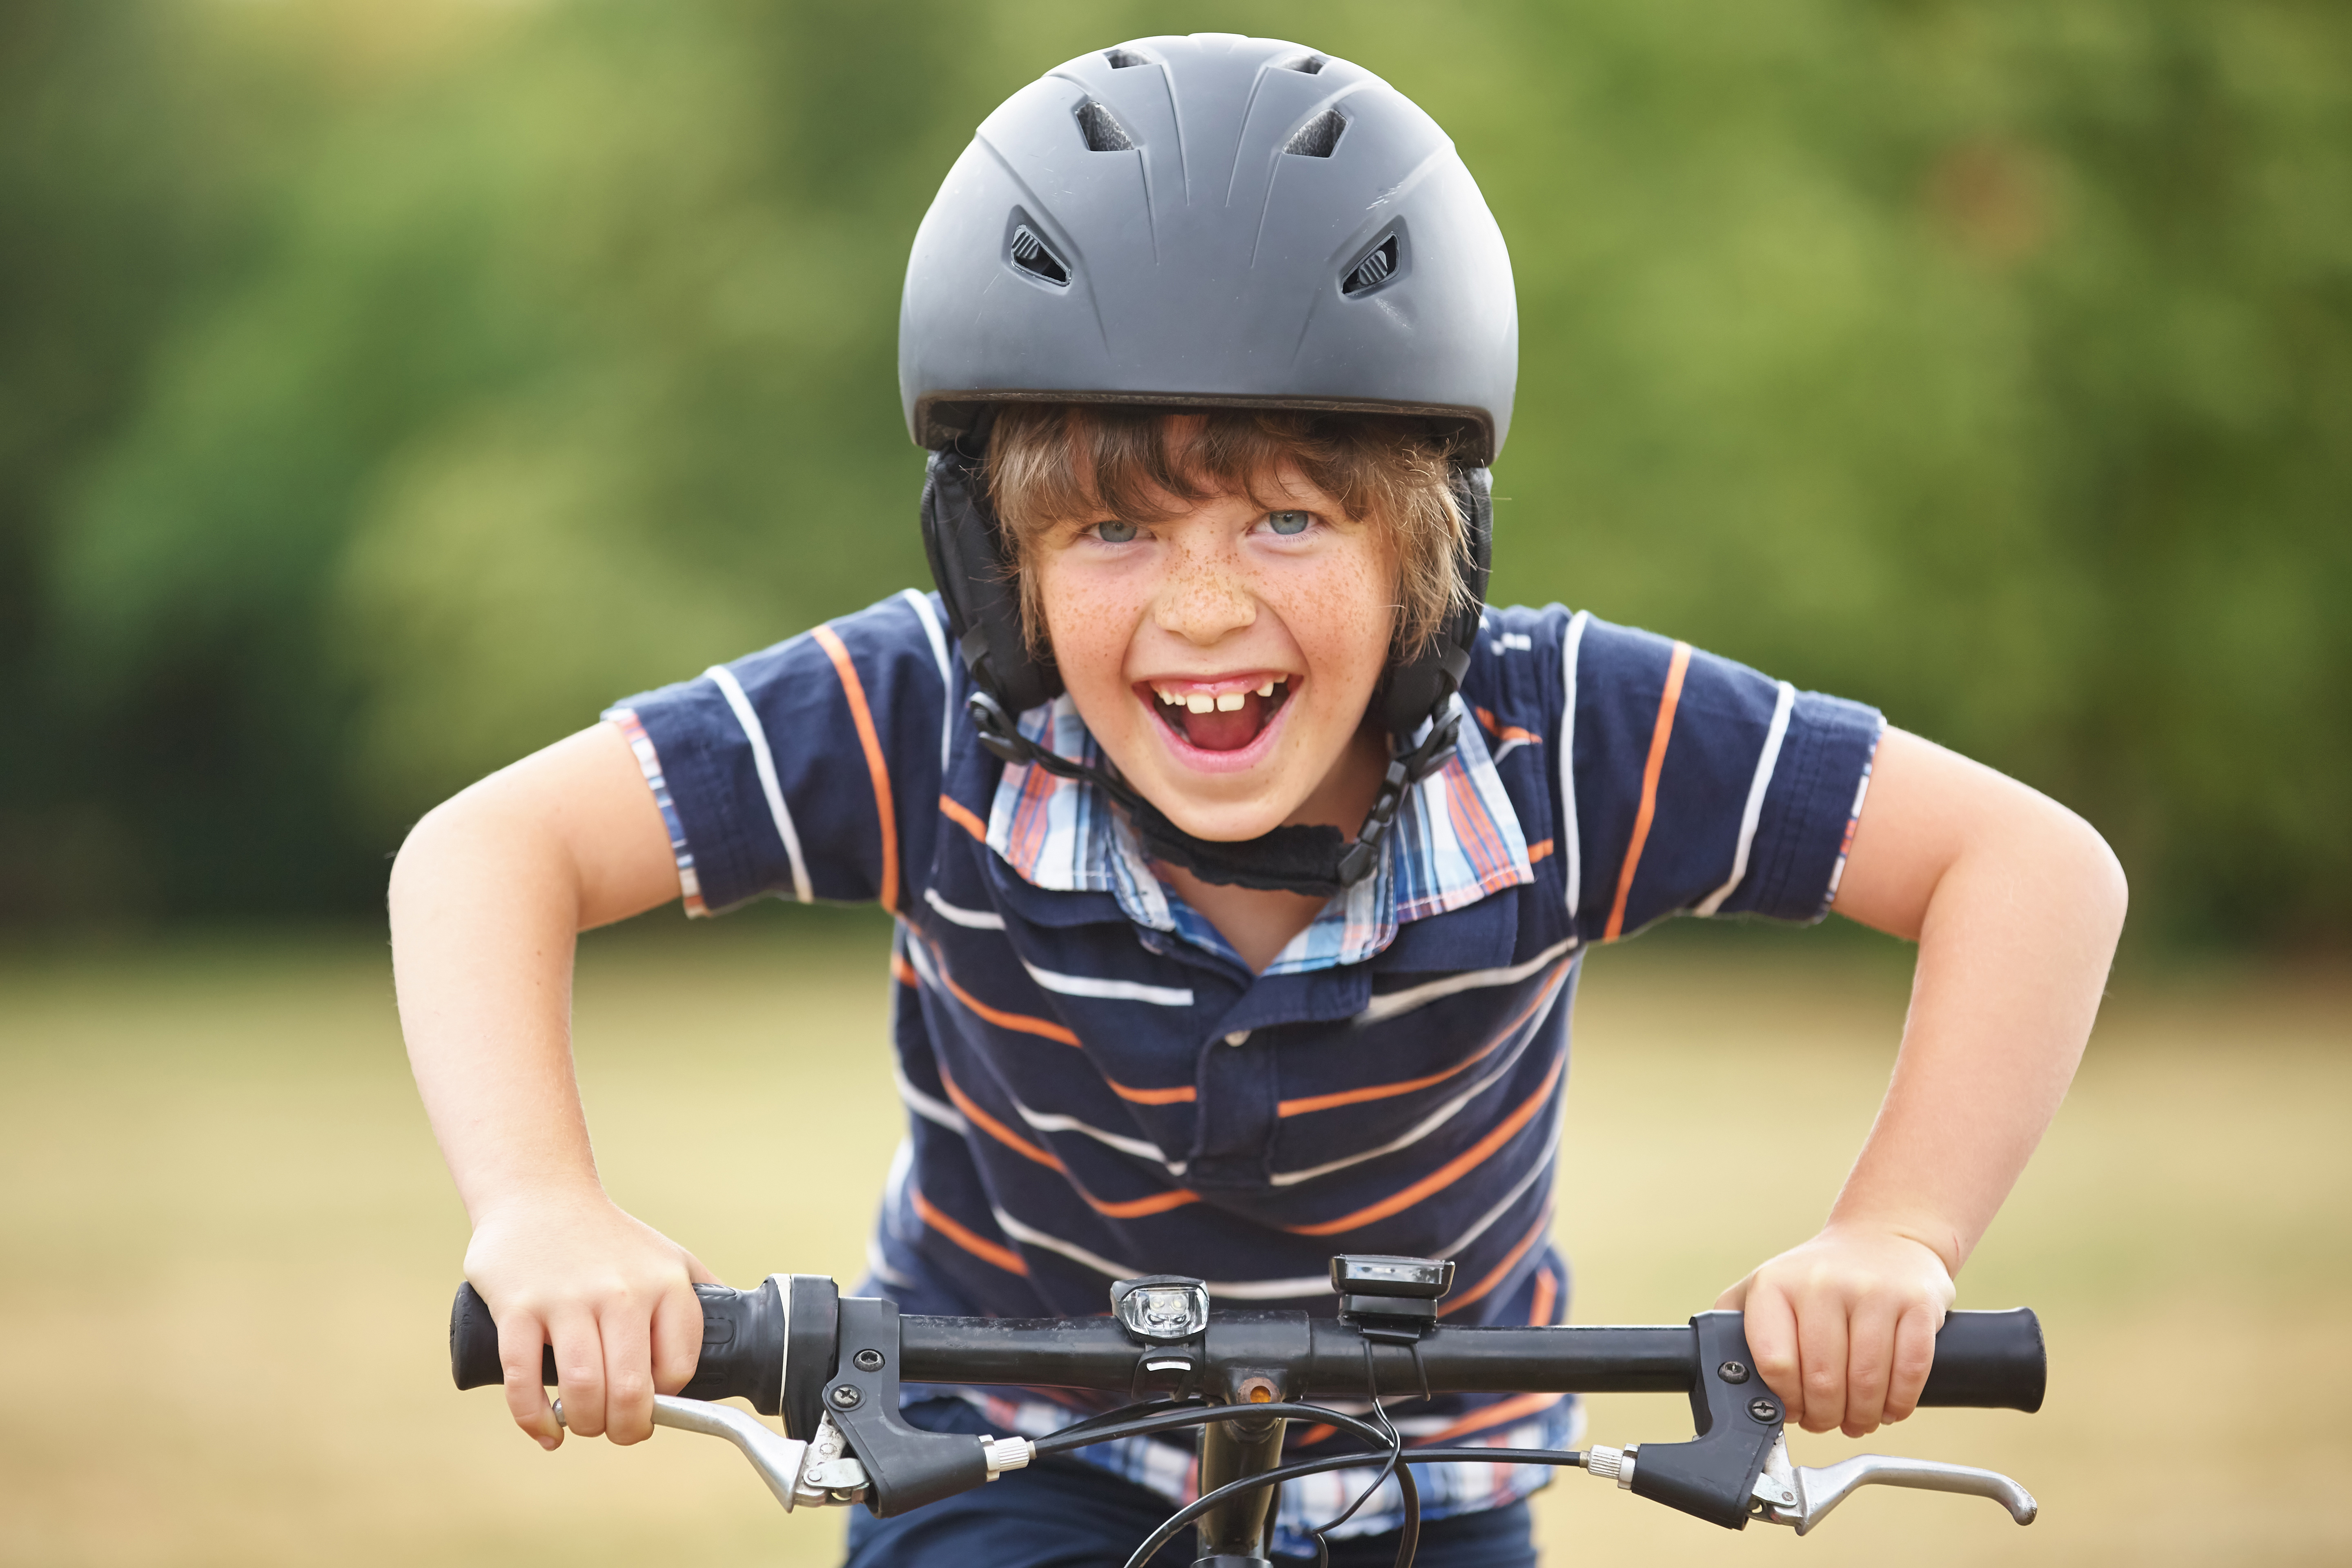 Sport Safety: Protecting Your Child's Mouth and Teeth